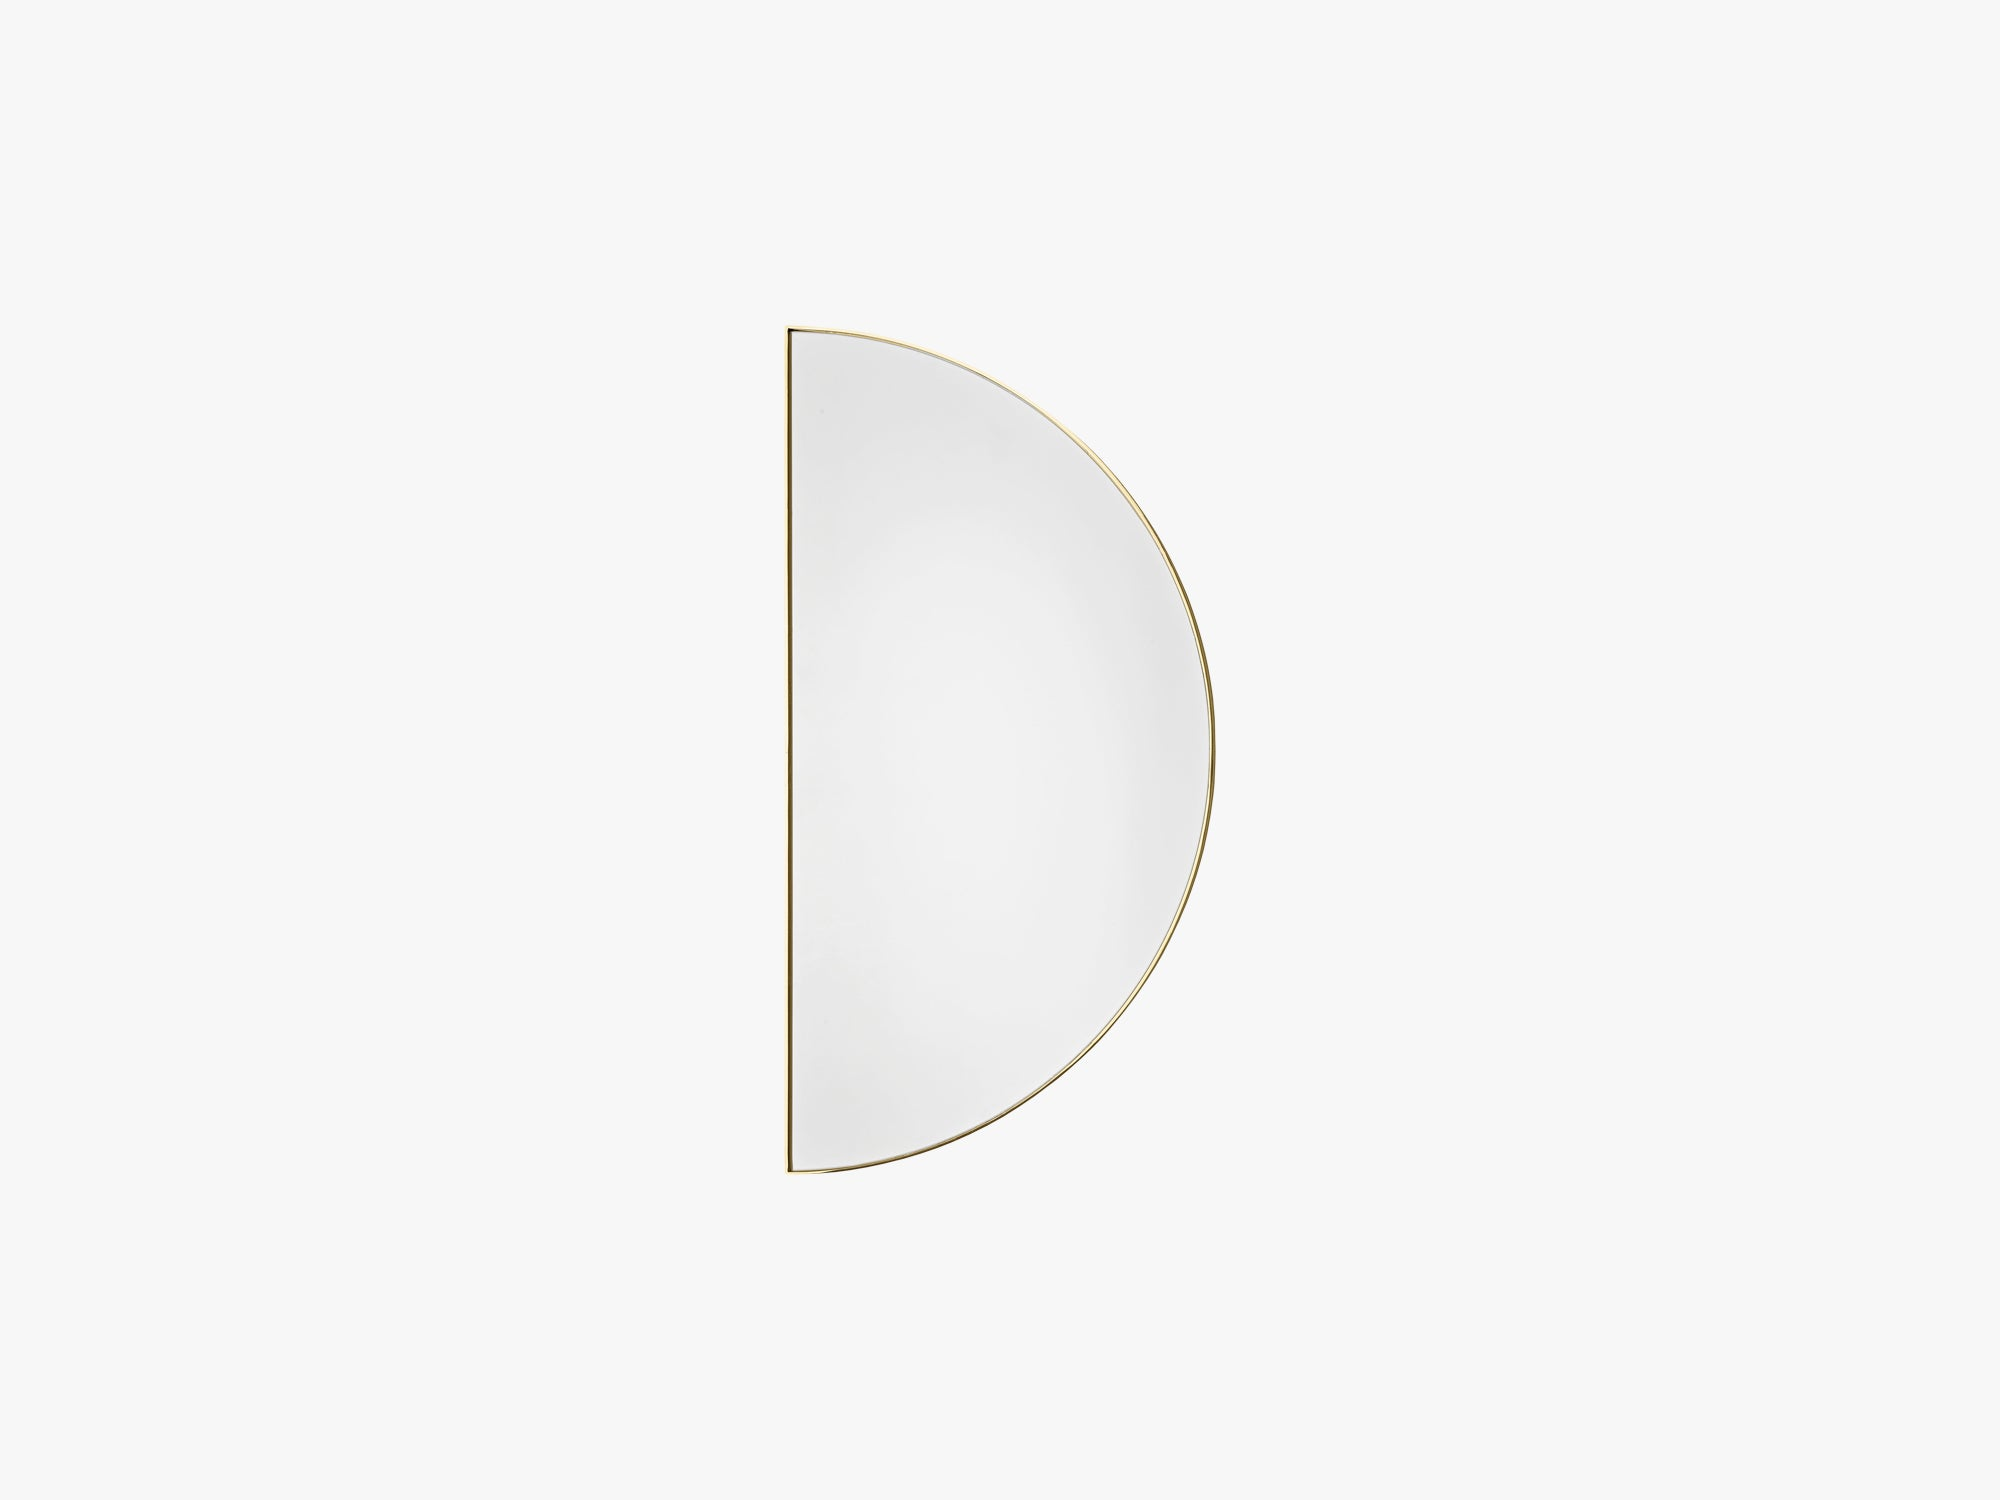 UNITY mirror 1/2 circle gold, one size fra AYTM